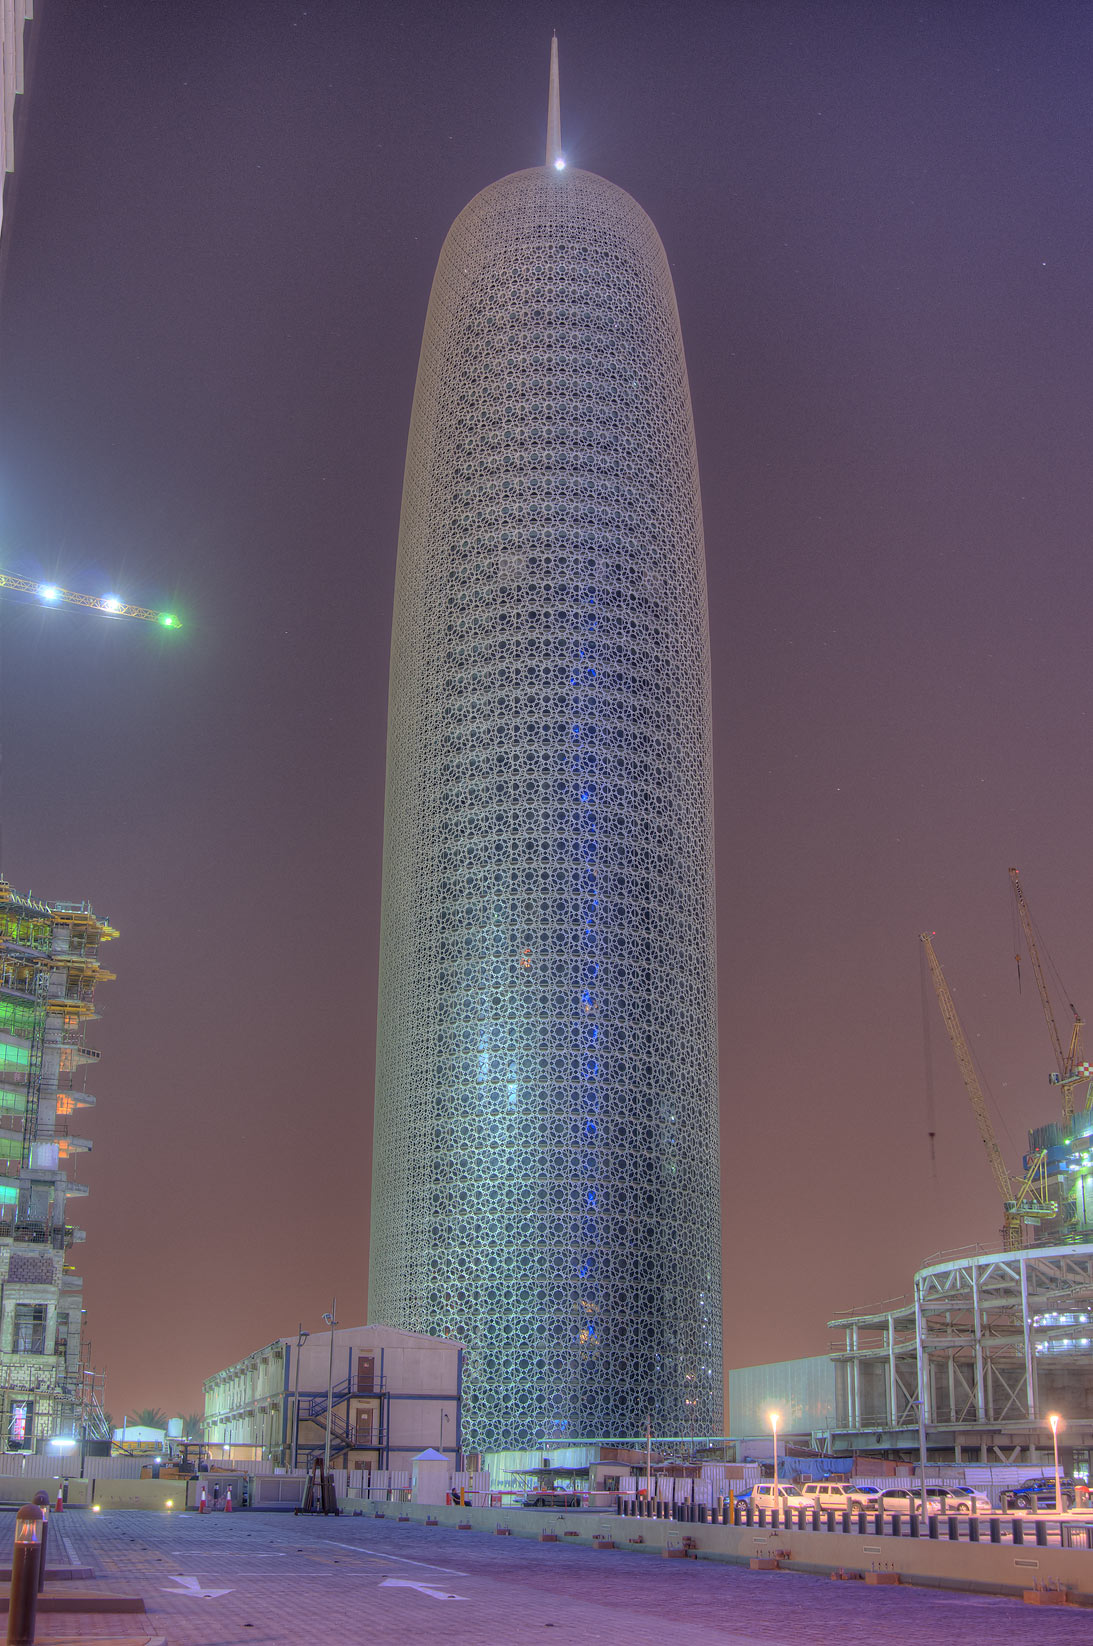 Burj Qatar (phallic) Tower at evening. Doha, Qatar